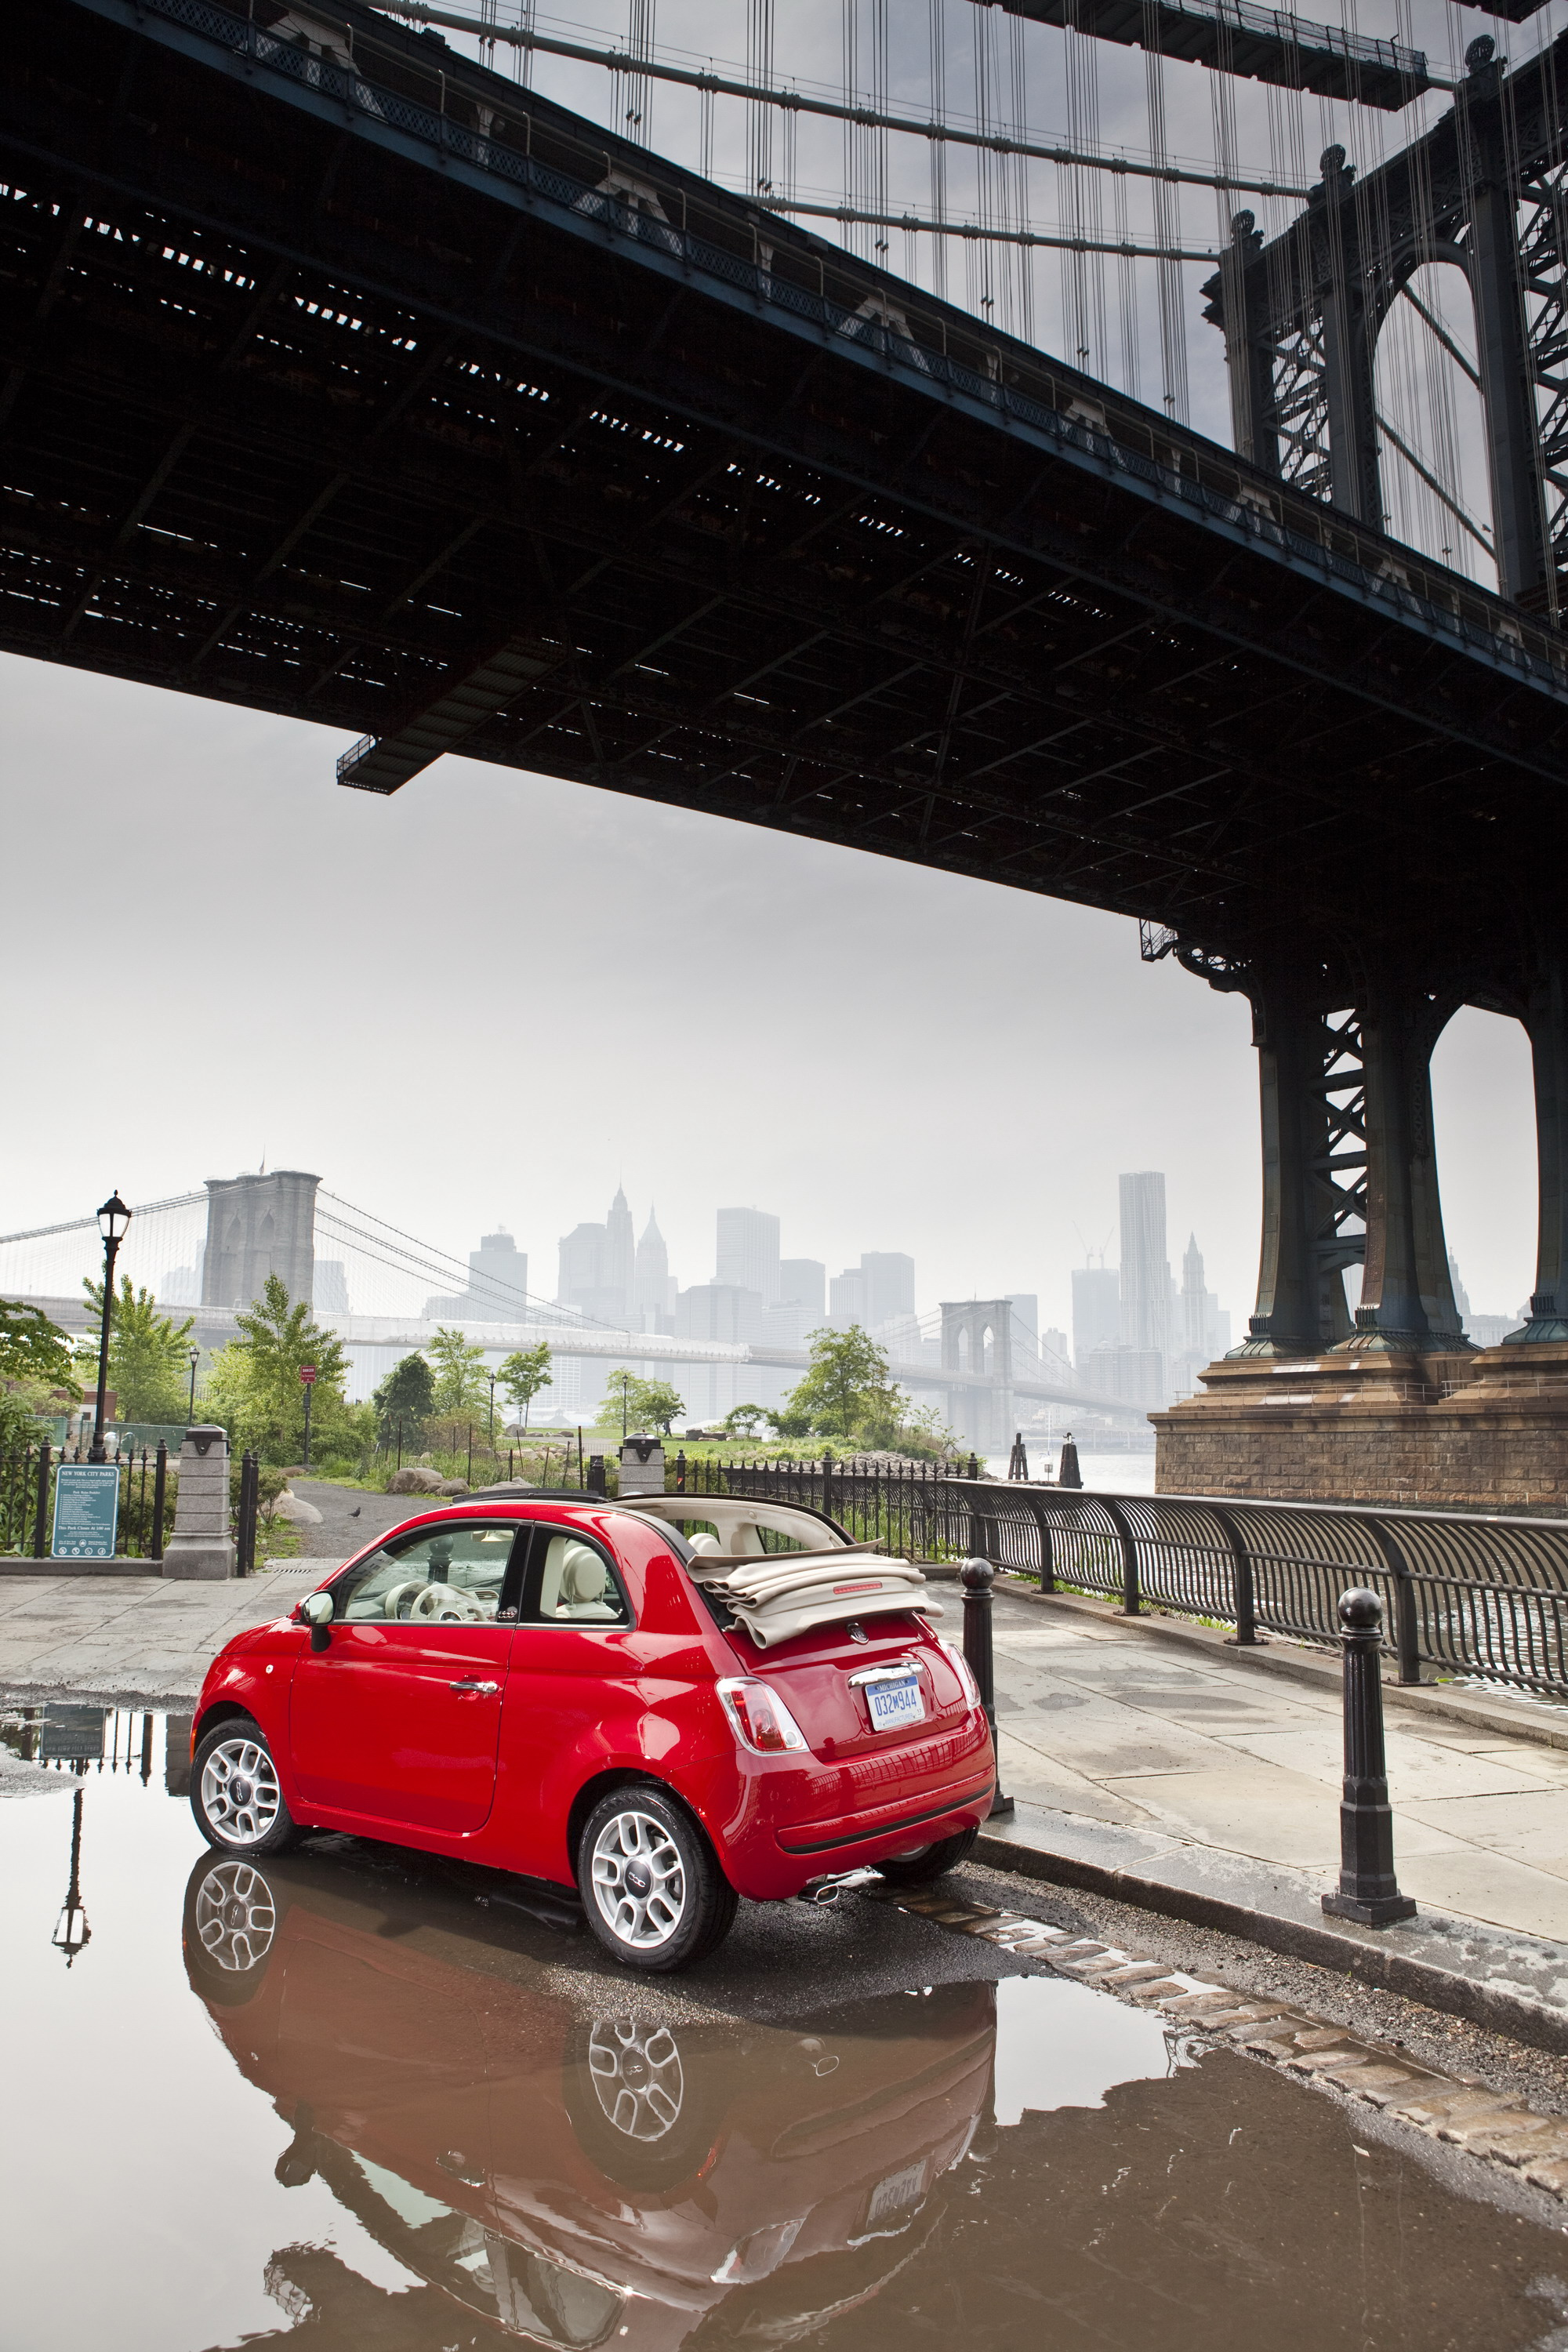 place city got there more of reviews compact i initially an cars from drive lot finally a lg fiat seemed car when or york first it manhattan made odd the any review for like new downtown but drives